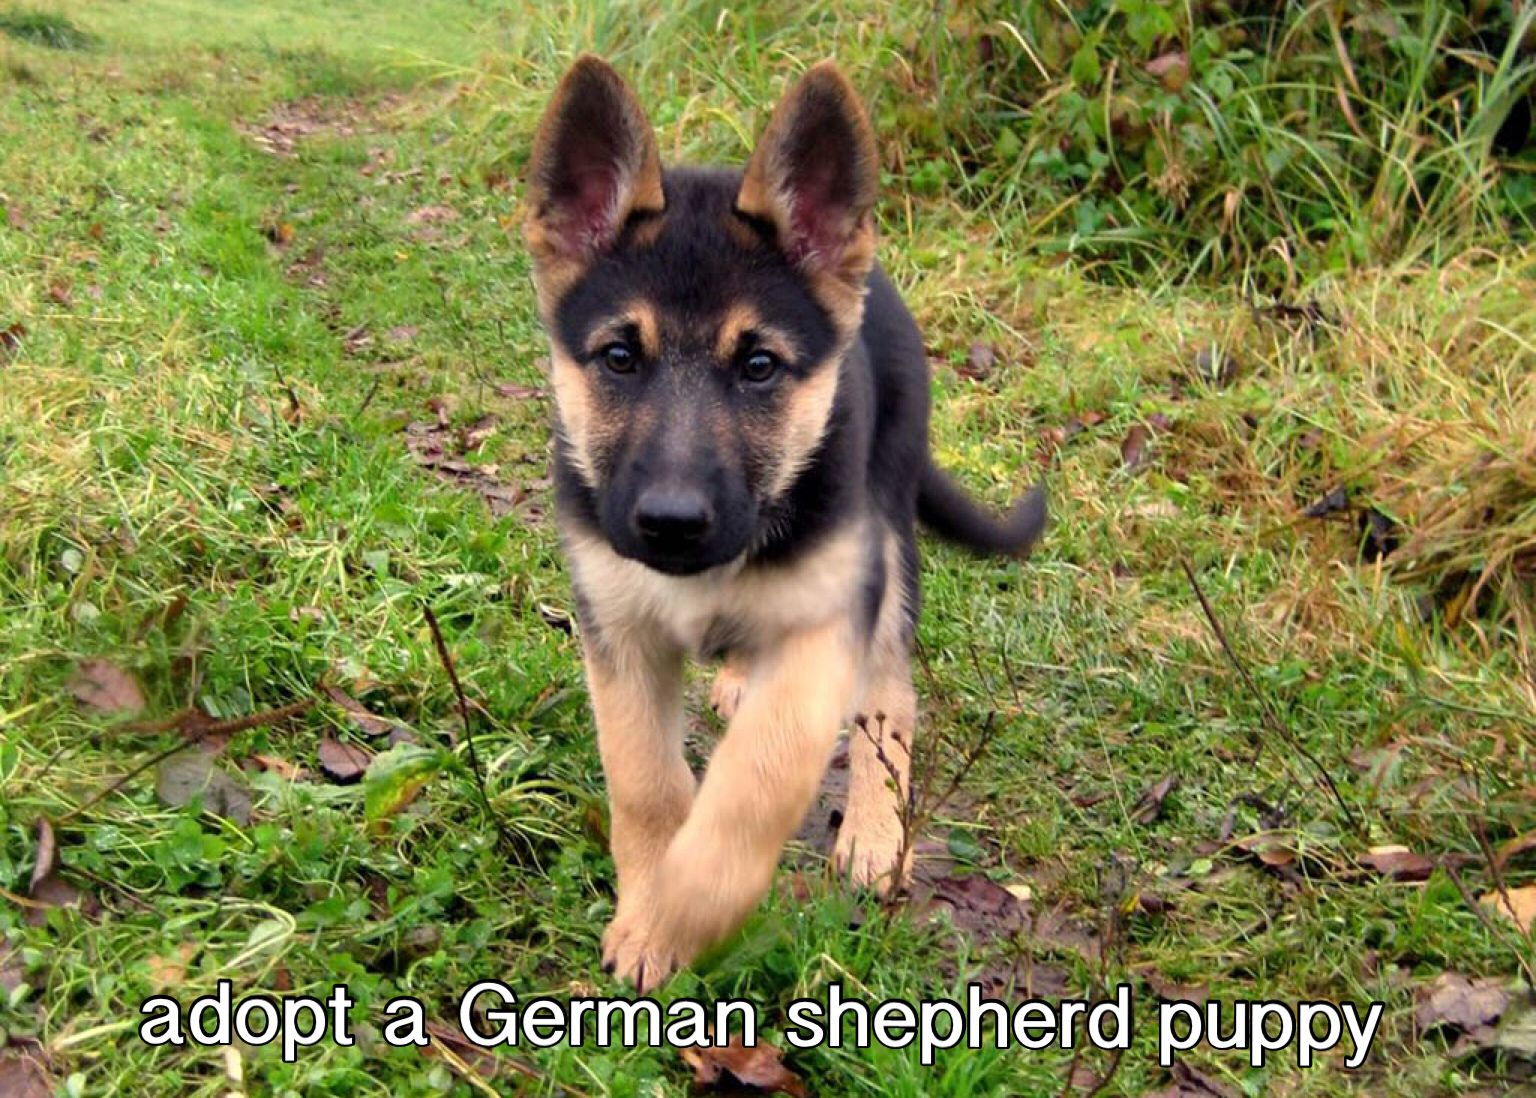 Excited To Adopt Or Rescue A German Shepherd Puppy In The Future